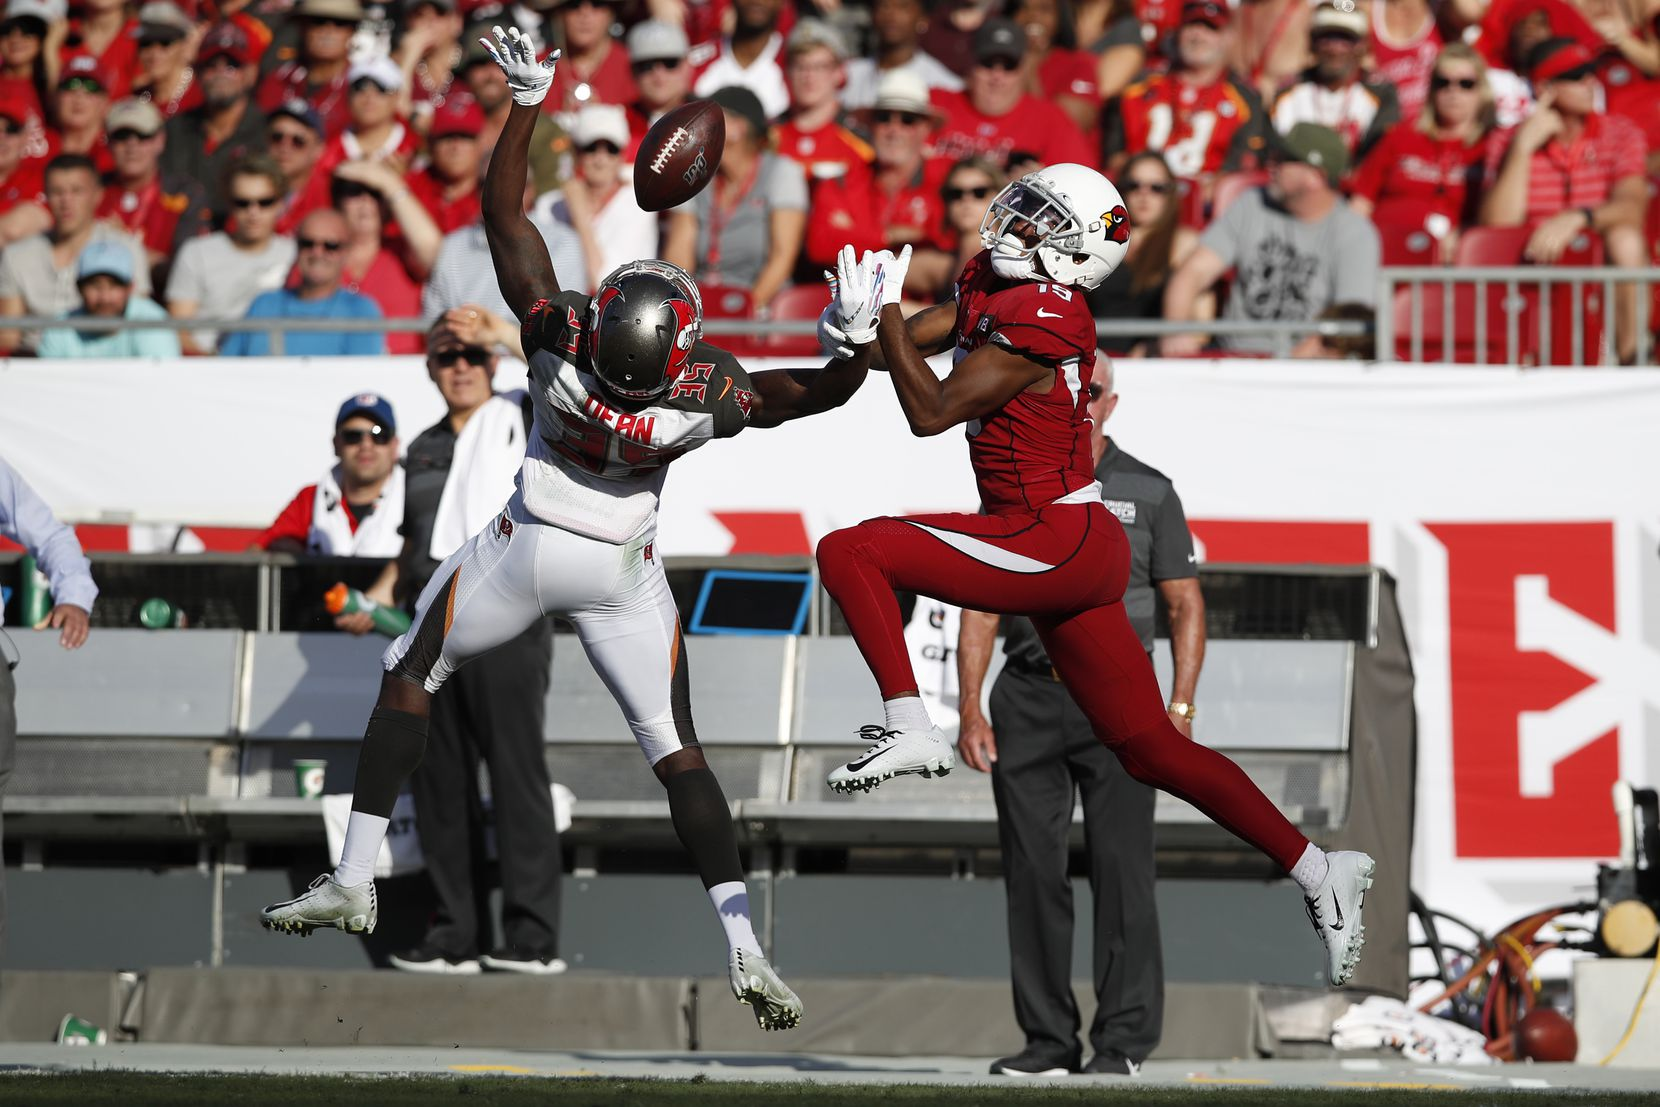 FILE - Buccaneers defensive back Jamel Dean (35) breaks up a pass intended for Cardinals wide receiver KeeSean Johnson (19) during a game on Sunday, Nov. 10, 2019, in Tampa, Fla. (Jeff Haynes/AP Images for Panini)